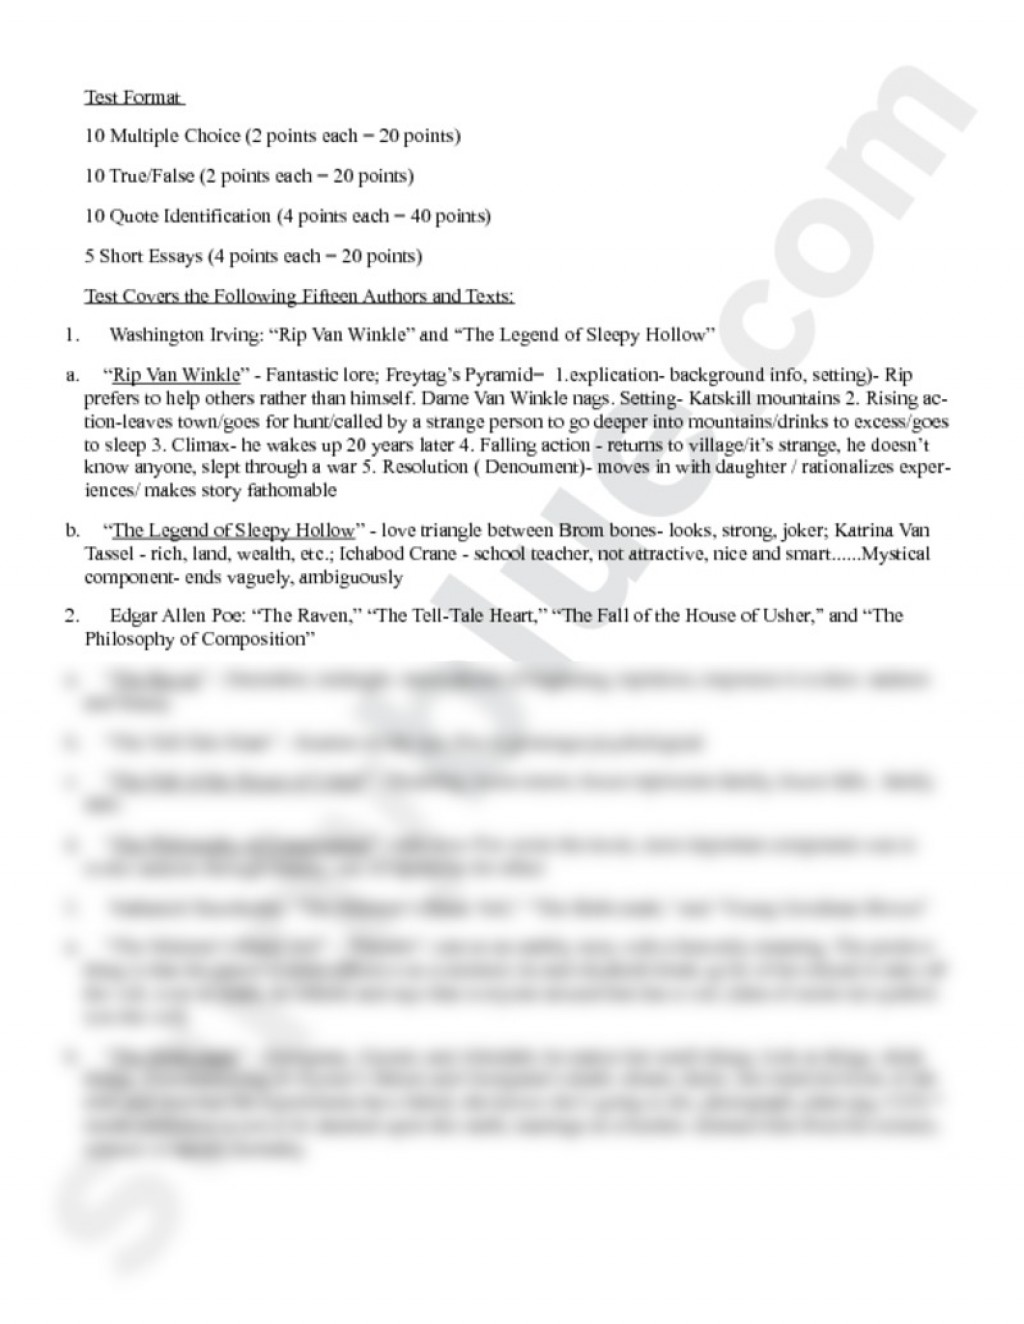 022 Essay Example Preview0 Immigration Wonderful Argumentative Laws Topics Illegal Large